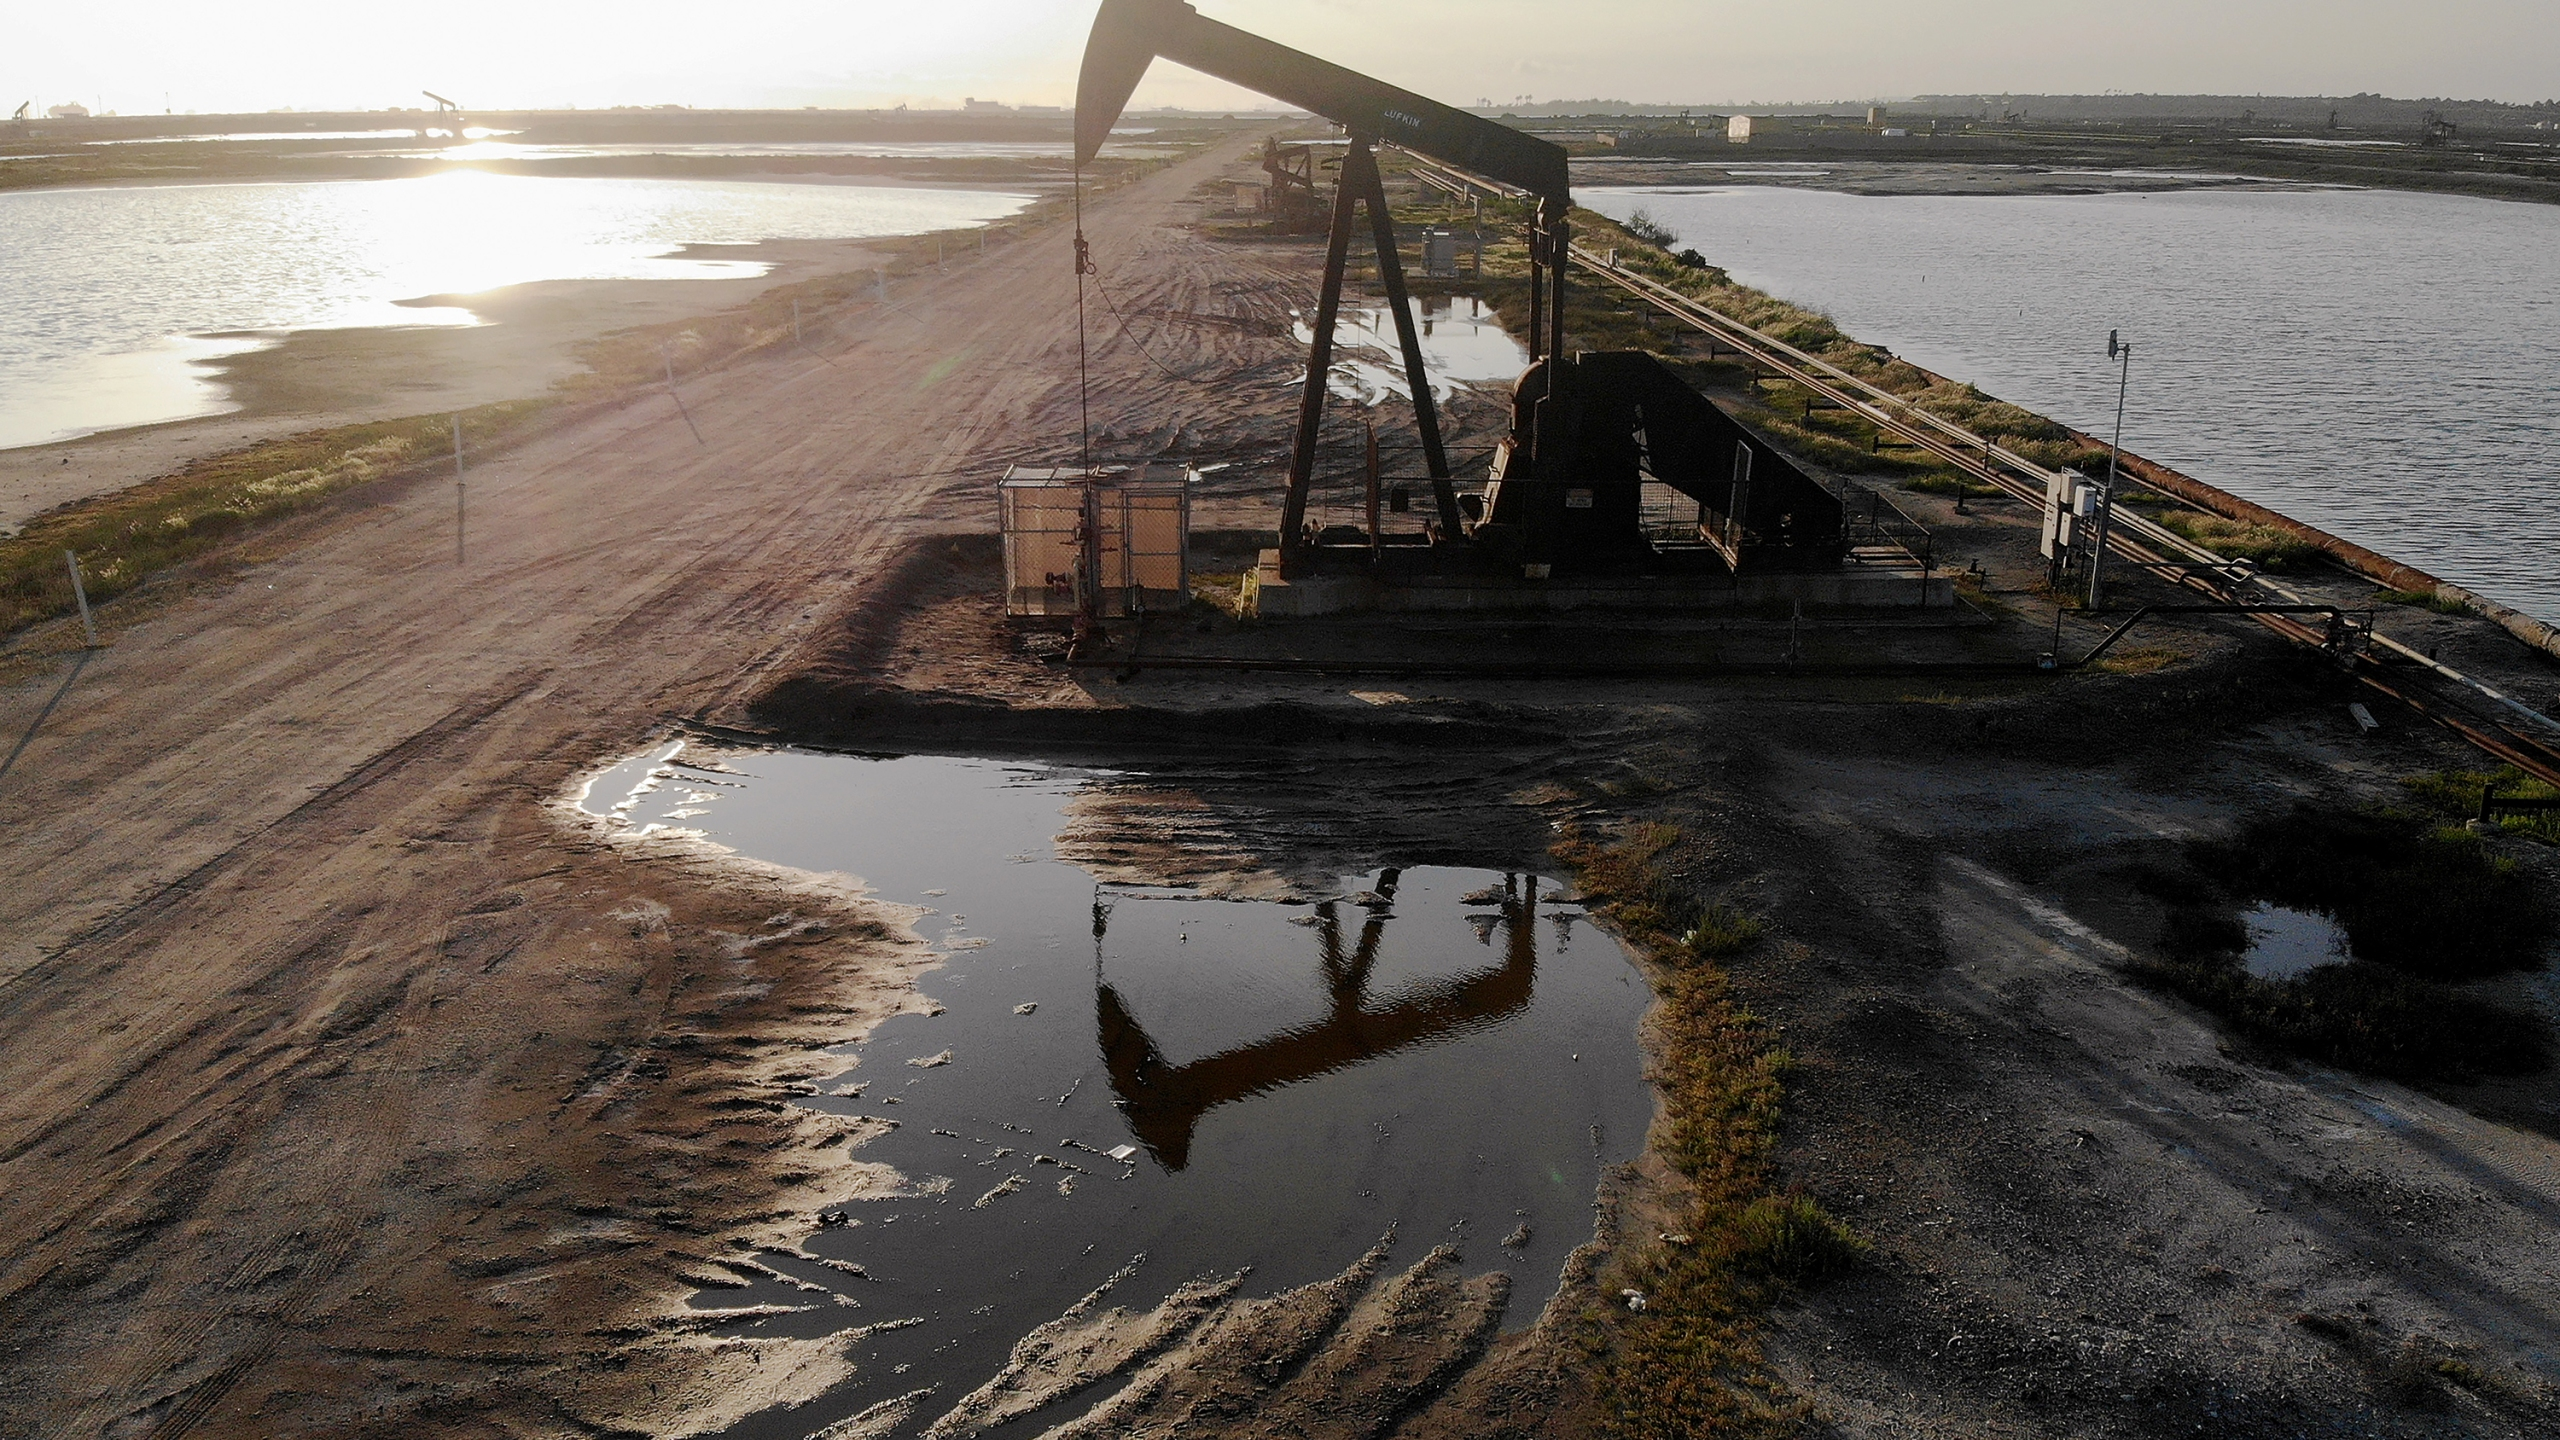 An aerial view shows an oil pumpjack at the Huntington Beach Oil Fields amidst the coronavirus pandemic on April 20, 2020 in Huntington Beach, California. Oil prices traded in negative territory for the first time as the spread of coronavirus impacts global demand. (Mario Tama/Getty Images)